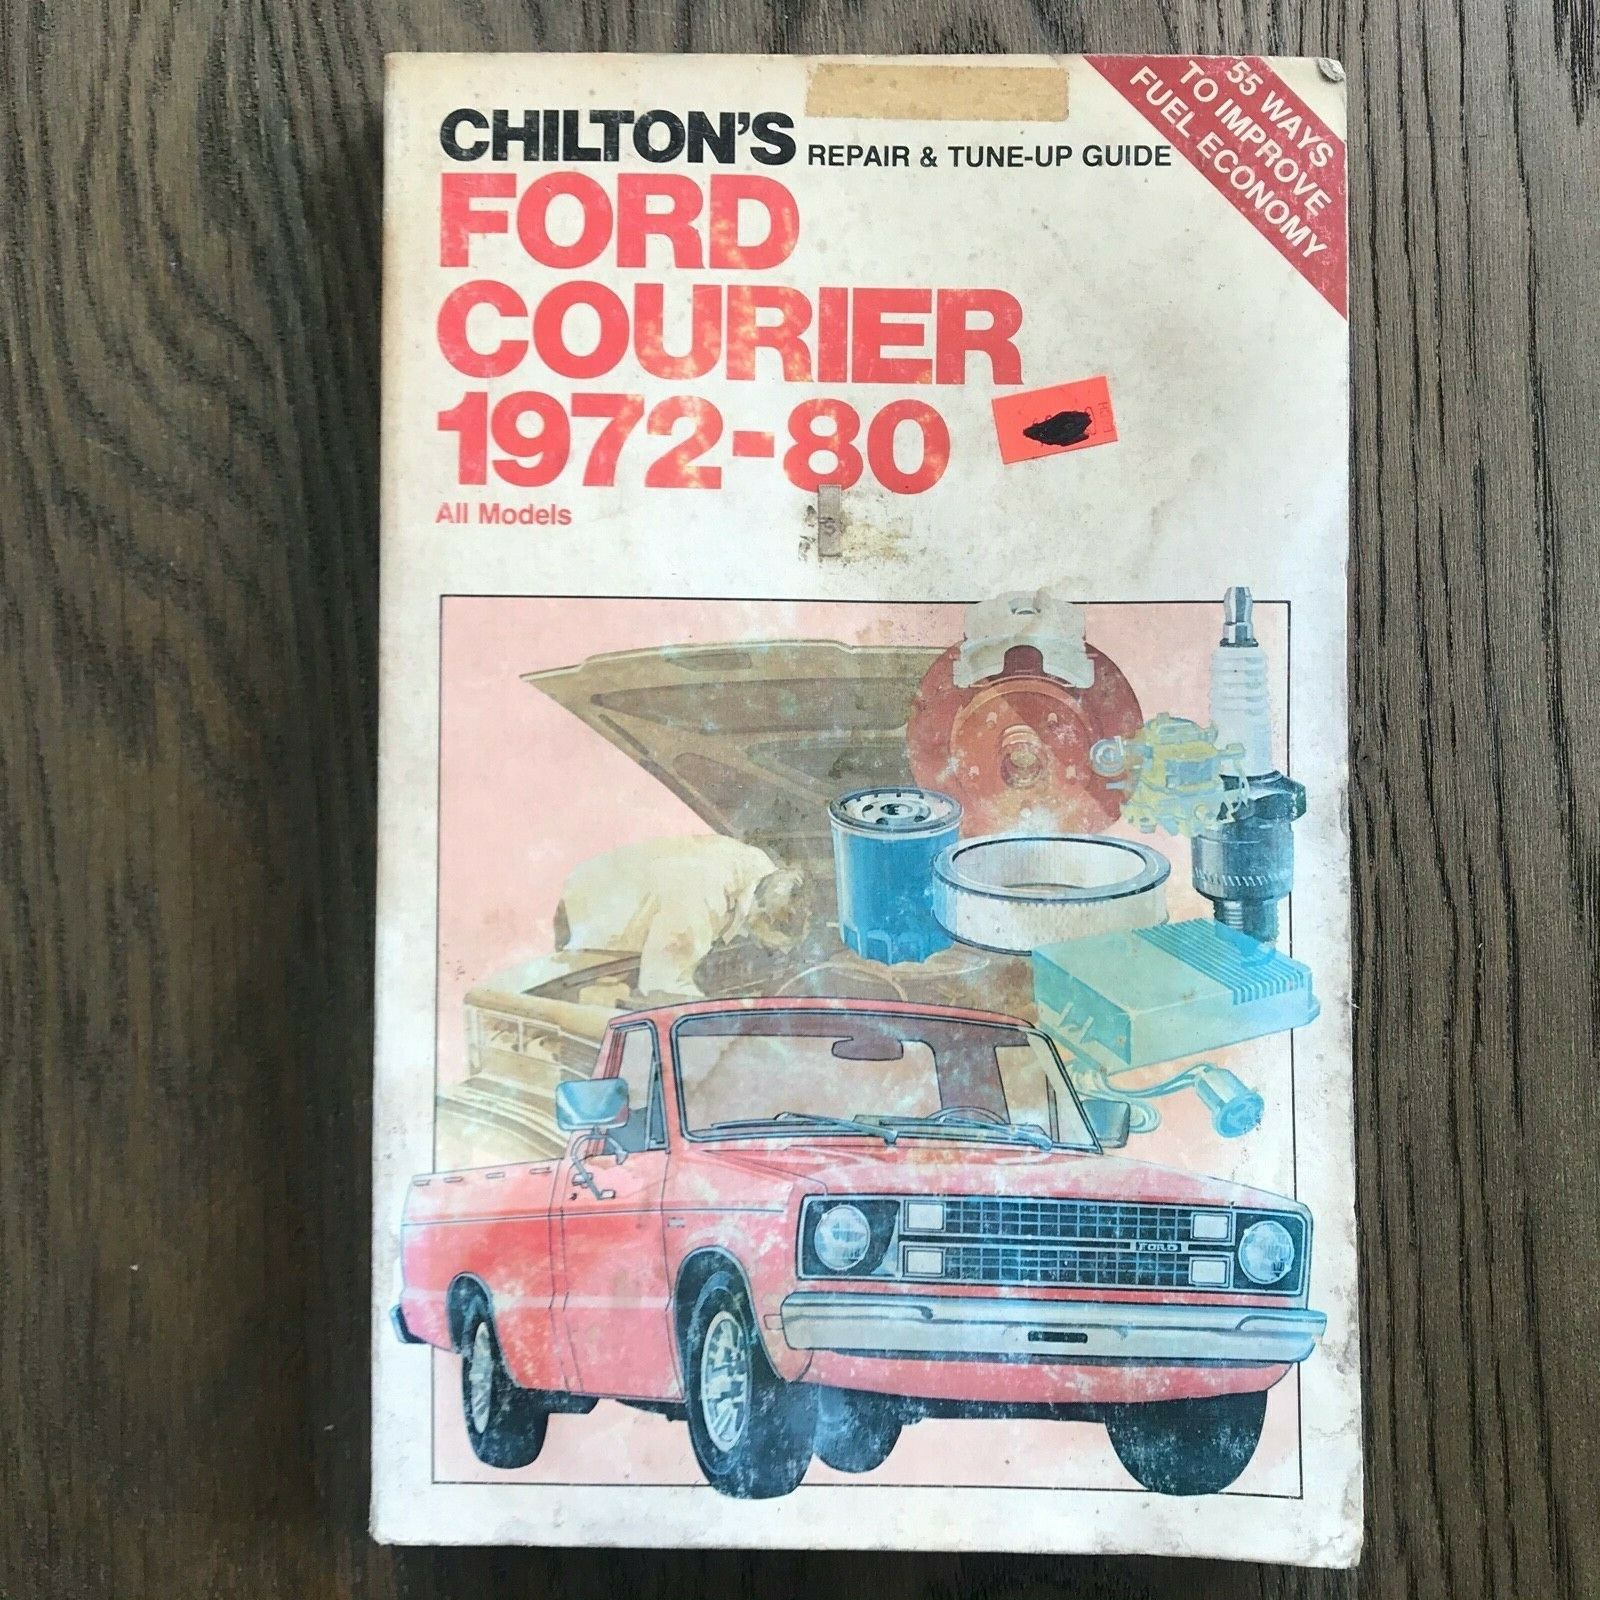 Ford Courier Pickups, Chilton's Shop Repair Manual, Service Guide 1972-80. Book  - $9.89